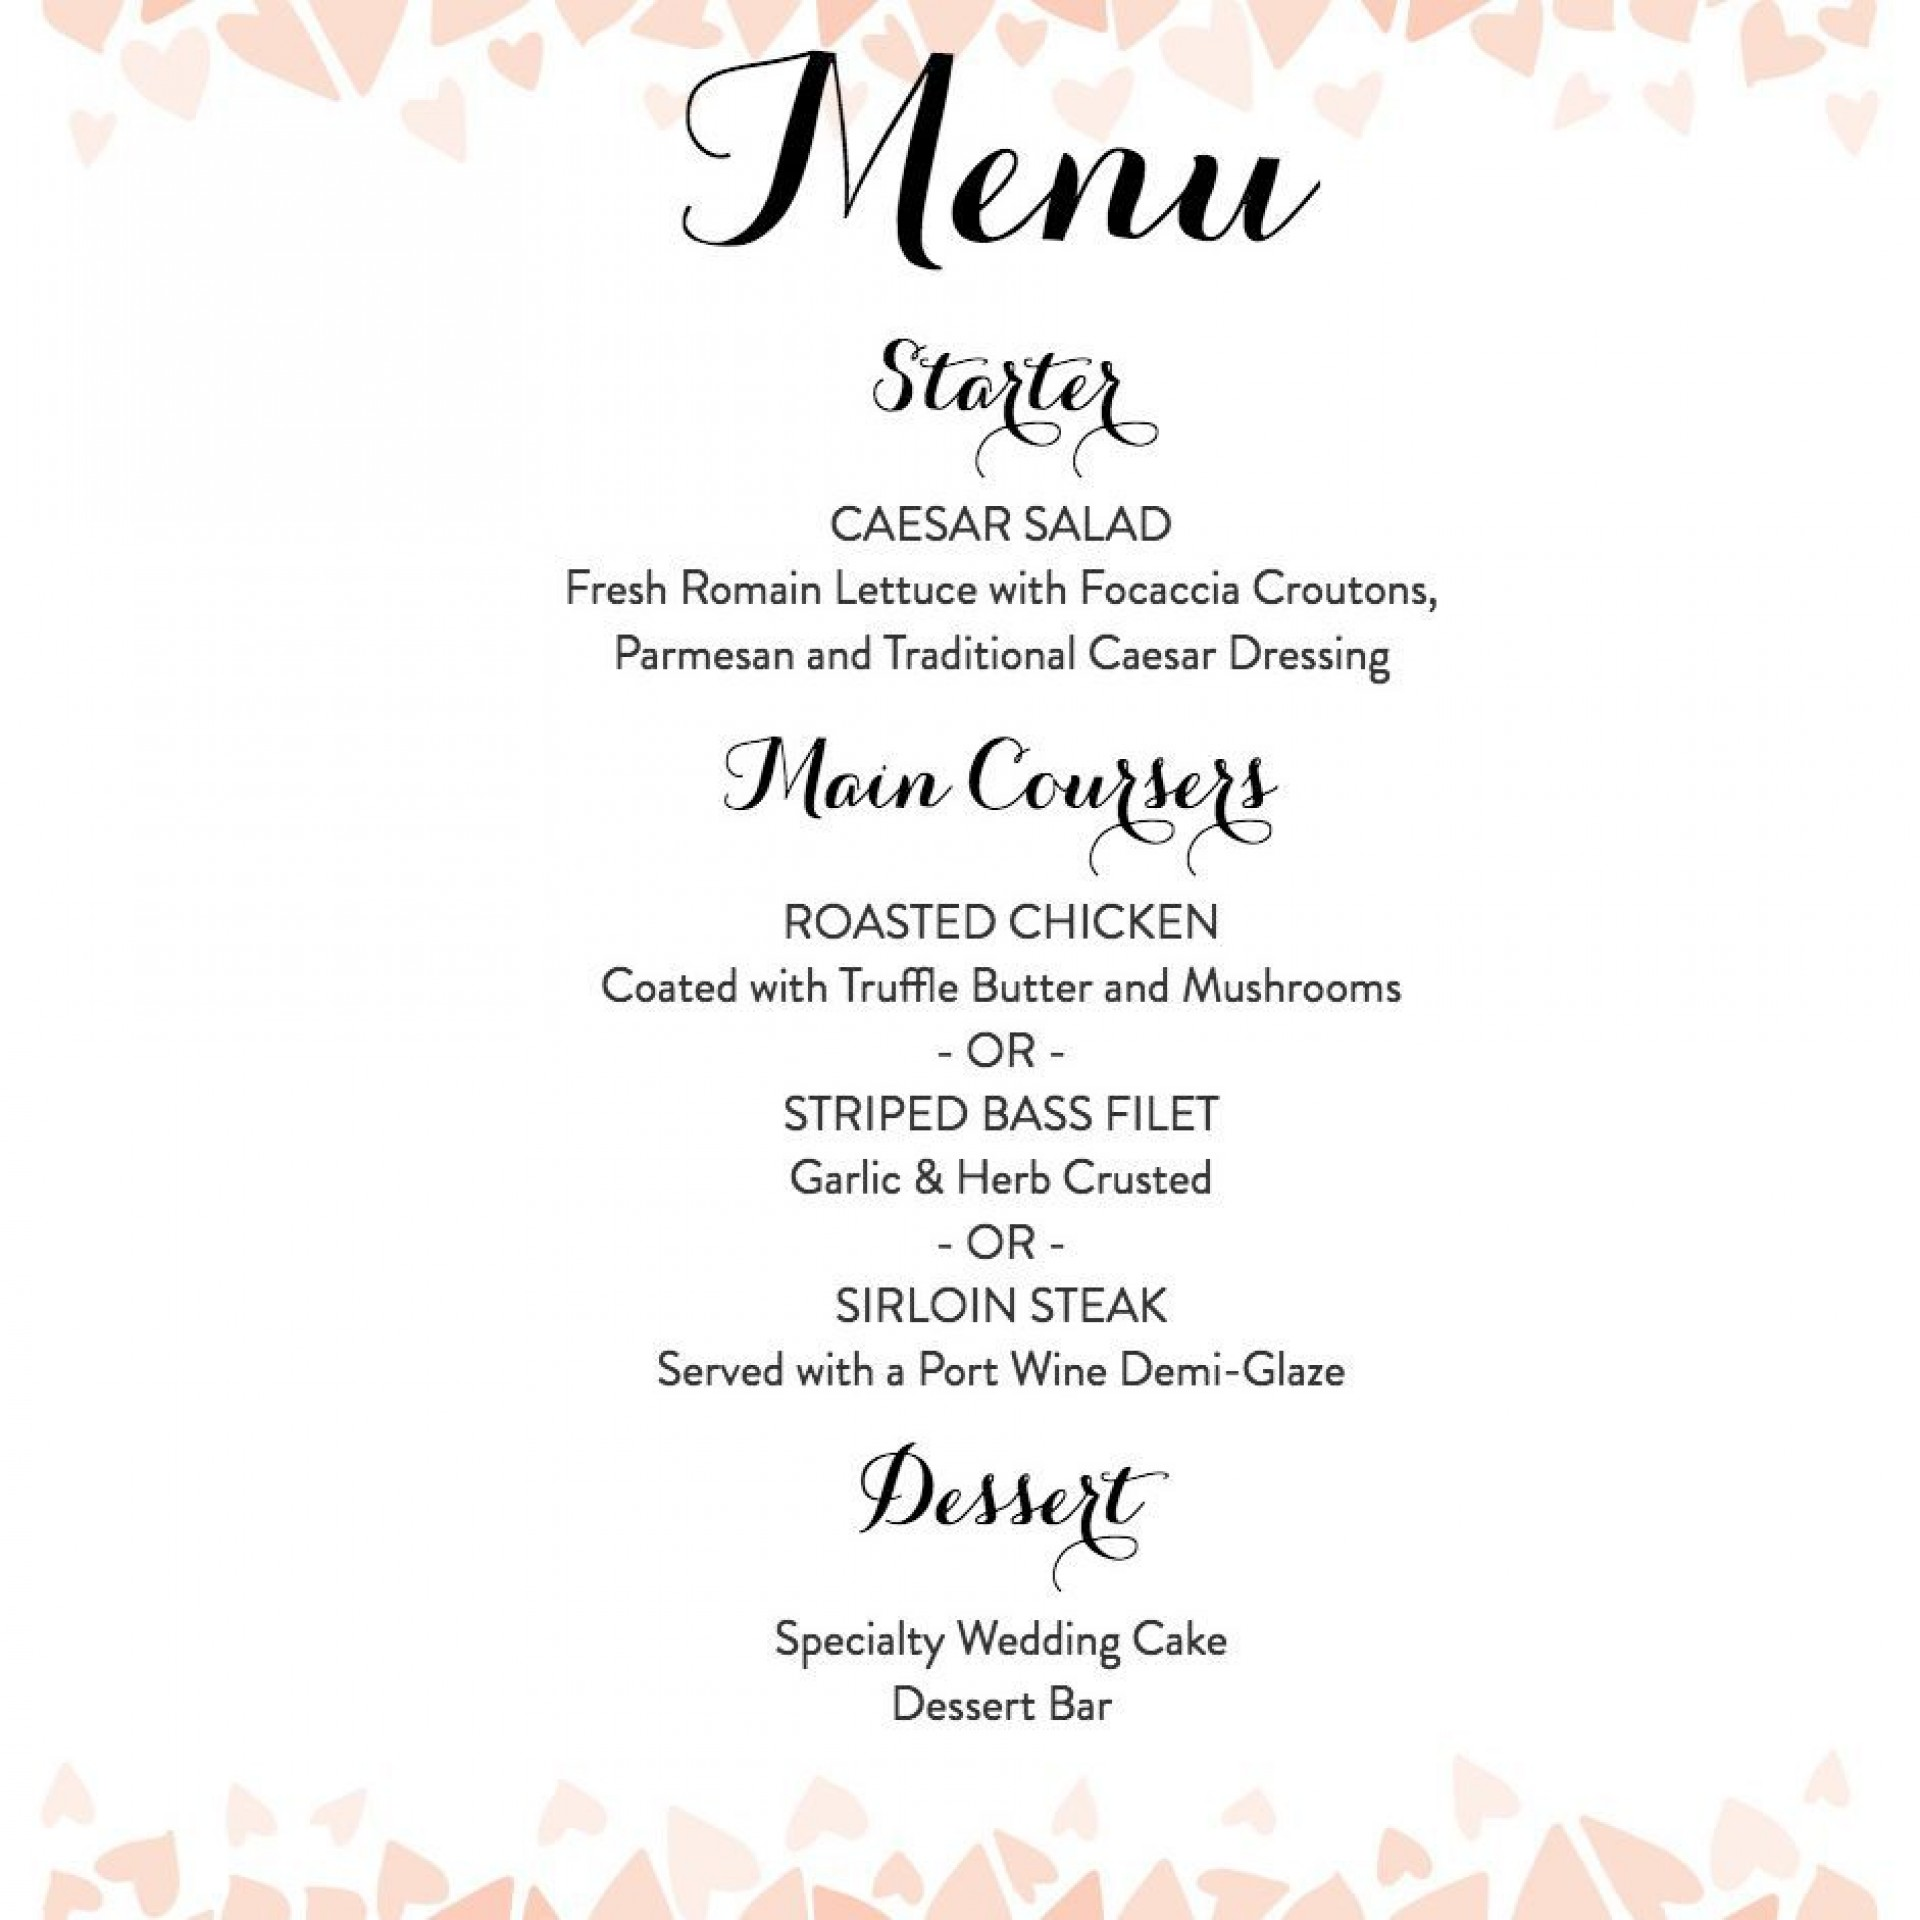 007 Archaicawful Free Printable Wedding Menu Card Template High Definition  Templates1920